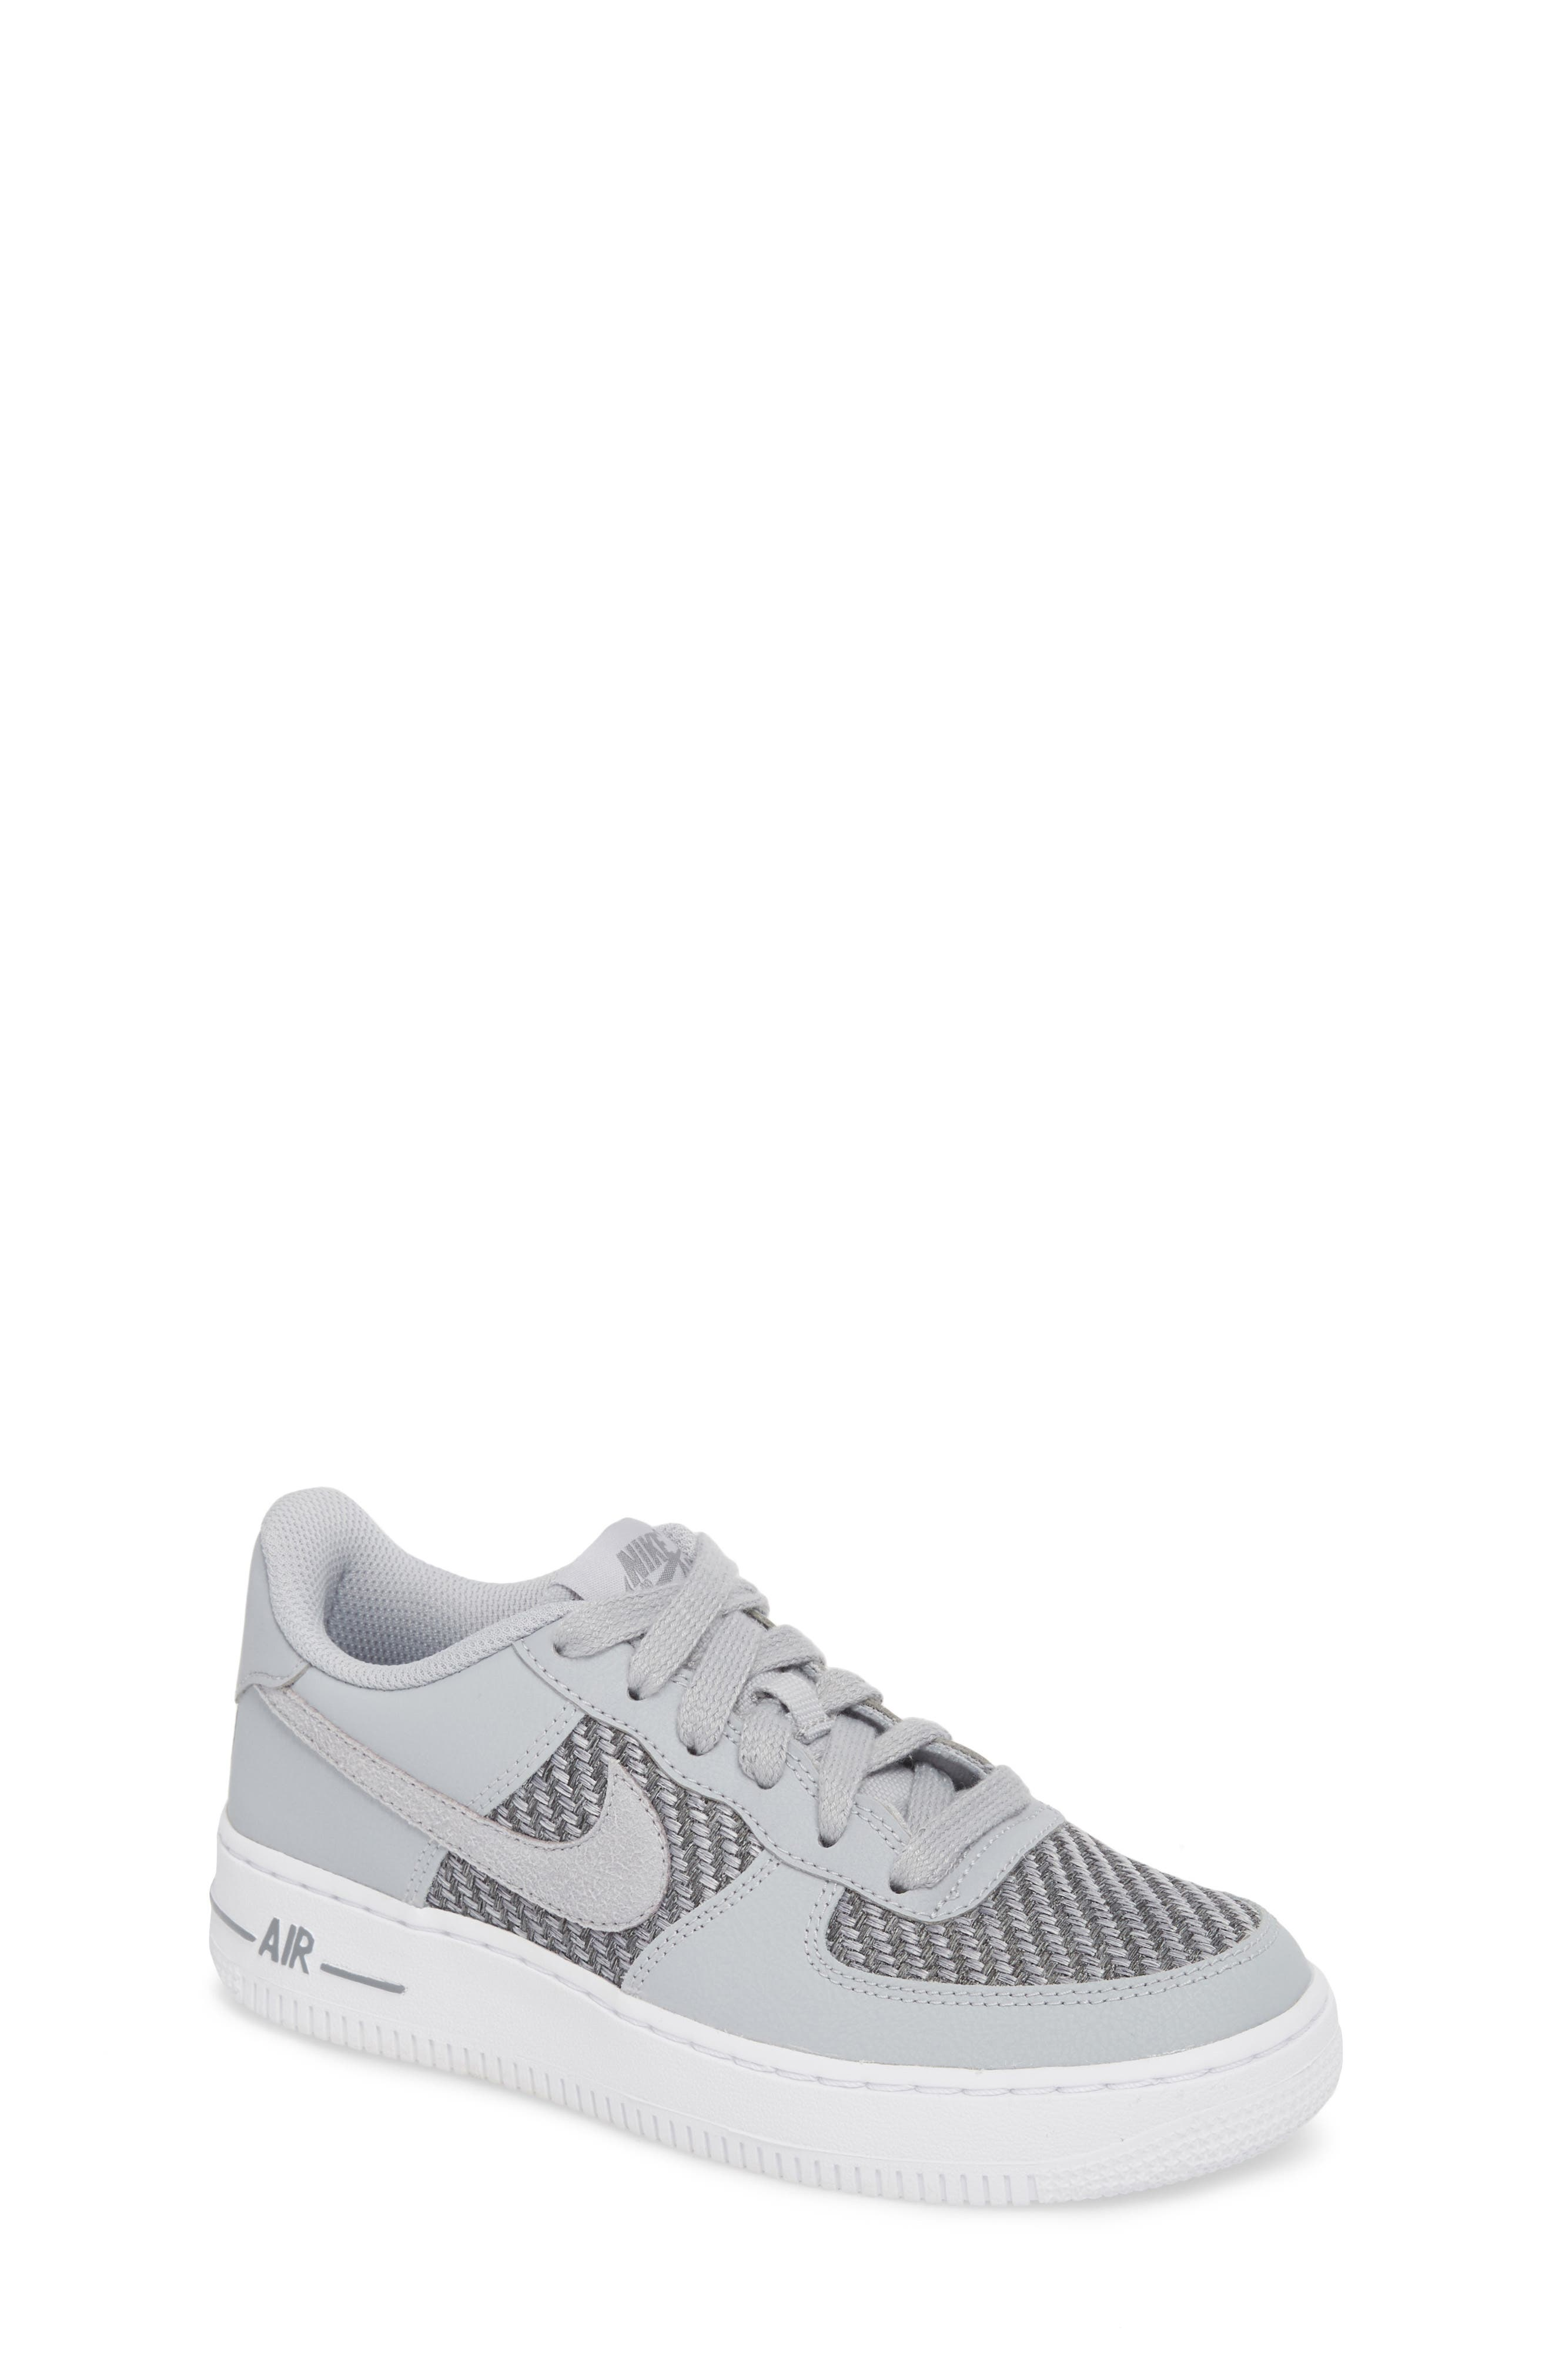 Air Force 1 LV8 Sneaker,                             Main thumbnail 1, color,                             Cool Grey/ White